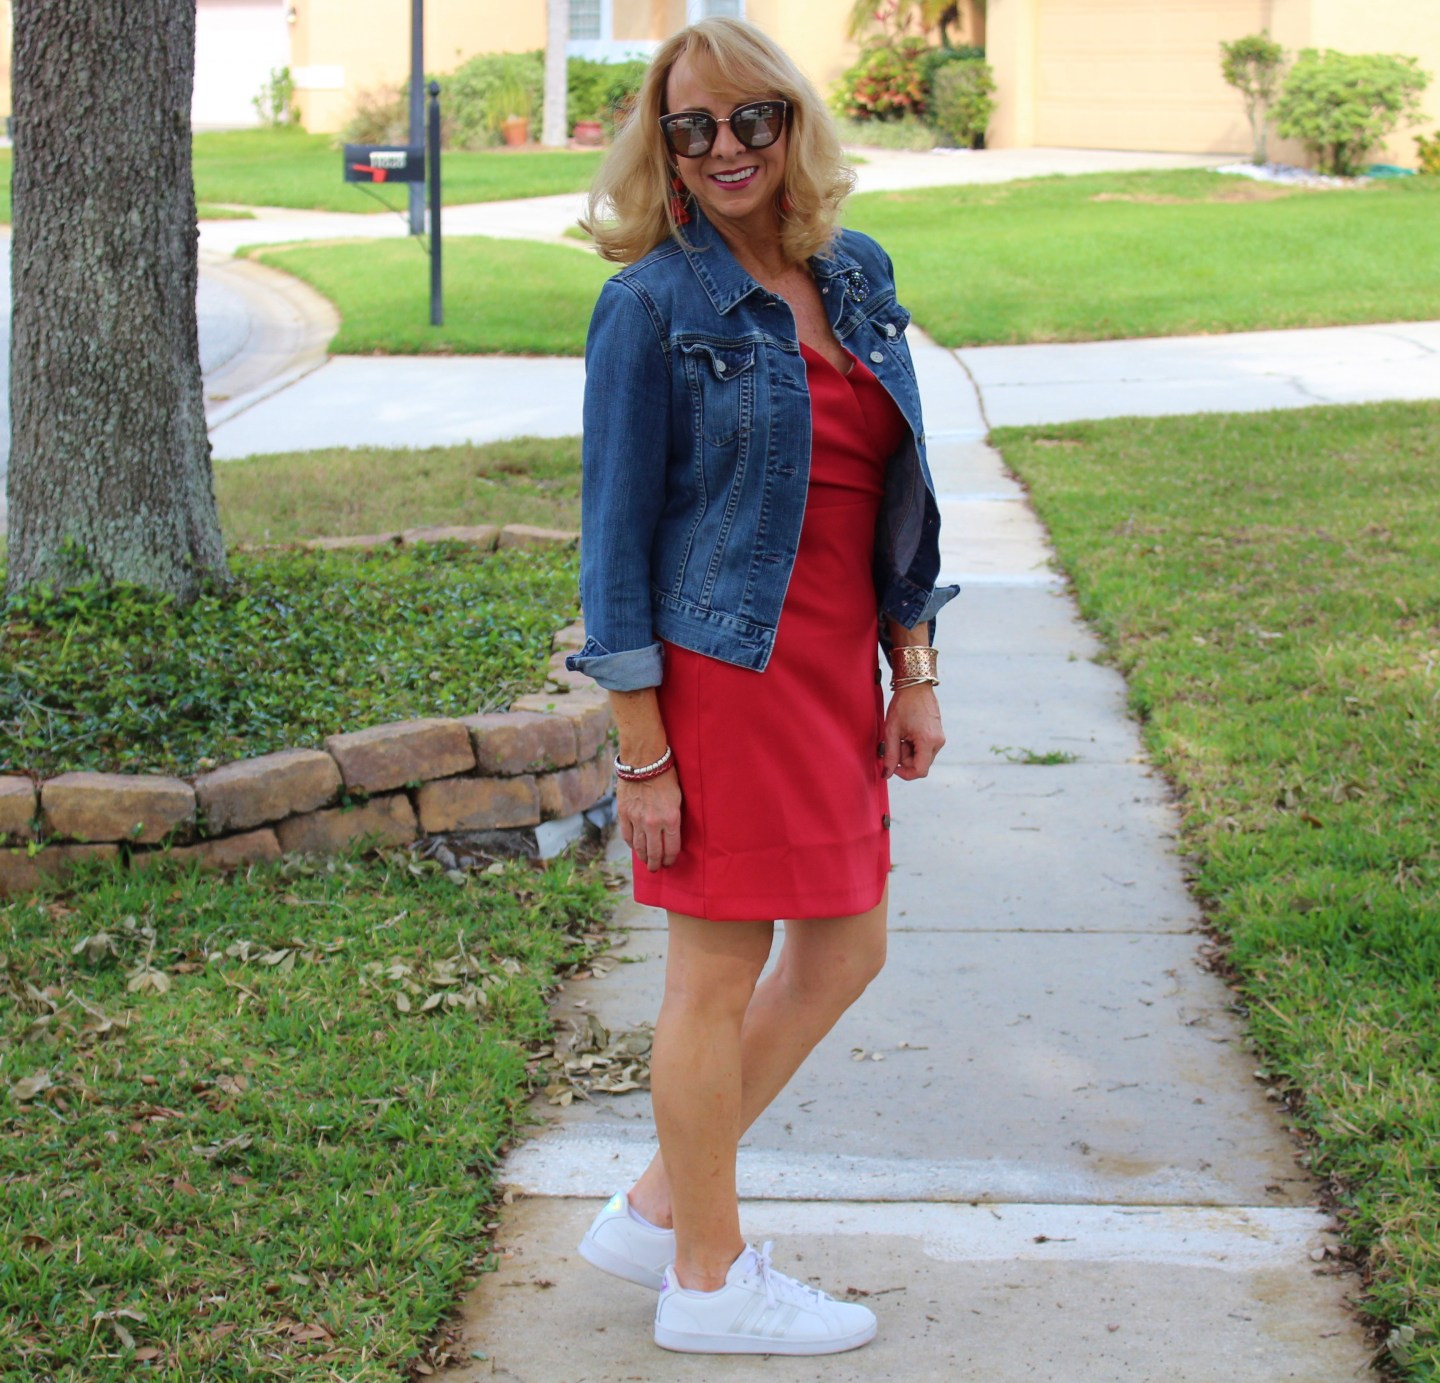 #Red Dress with Denim Jacket